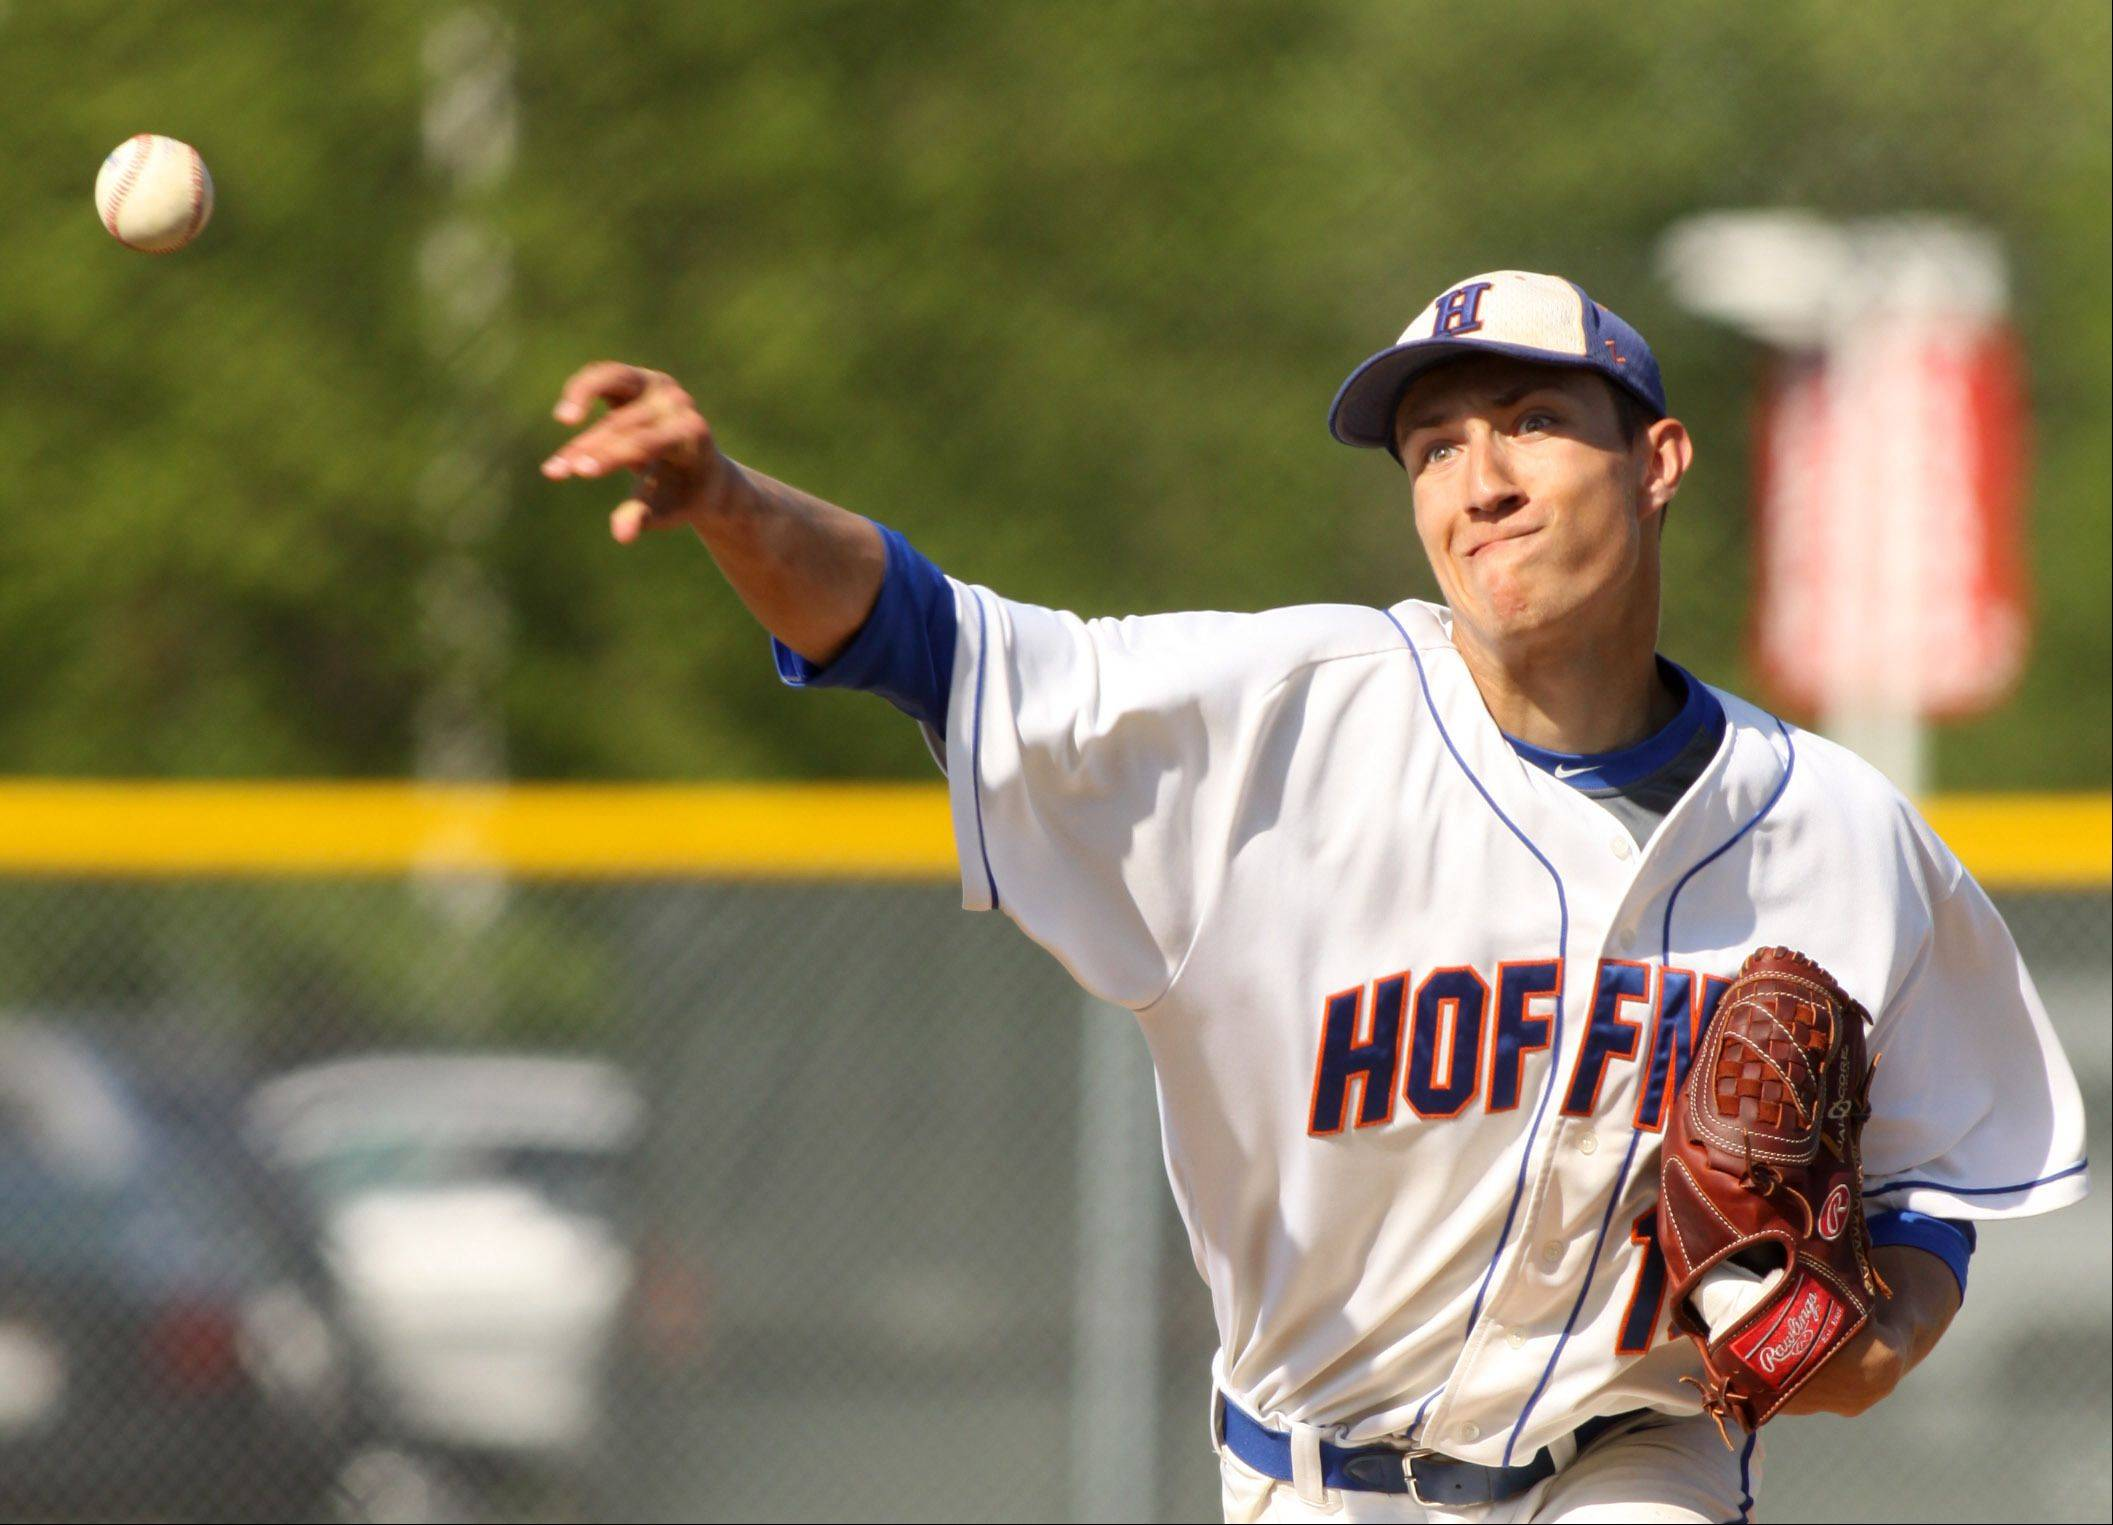 Hoffman Estates hurler Jimmy Ward delivers during Monday's Class 4A regional contest at Elgin.